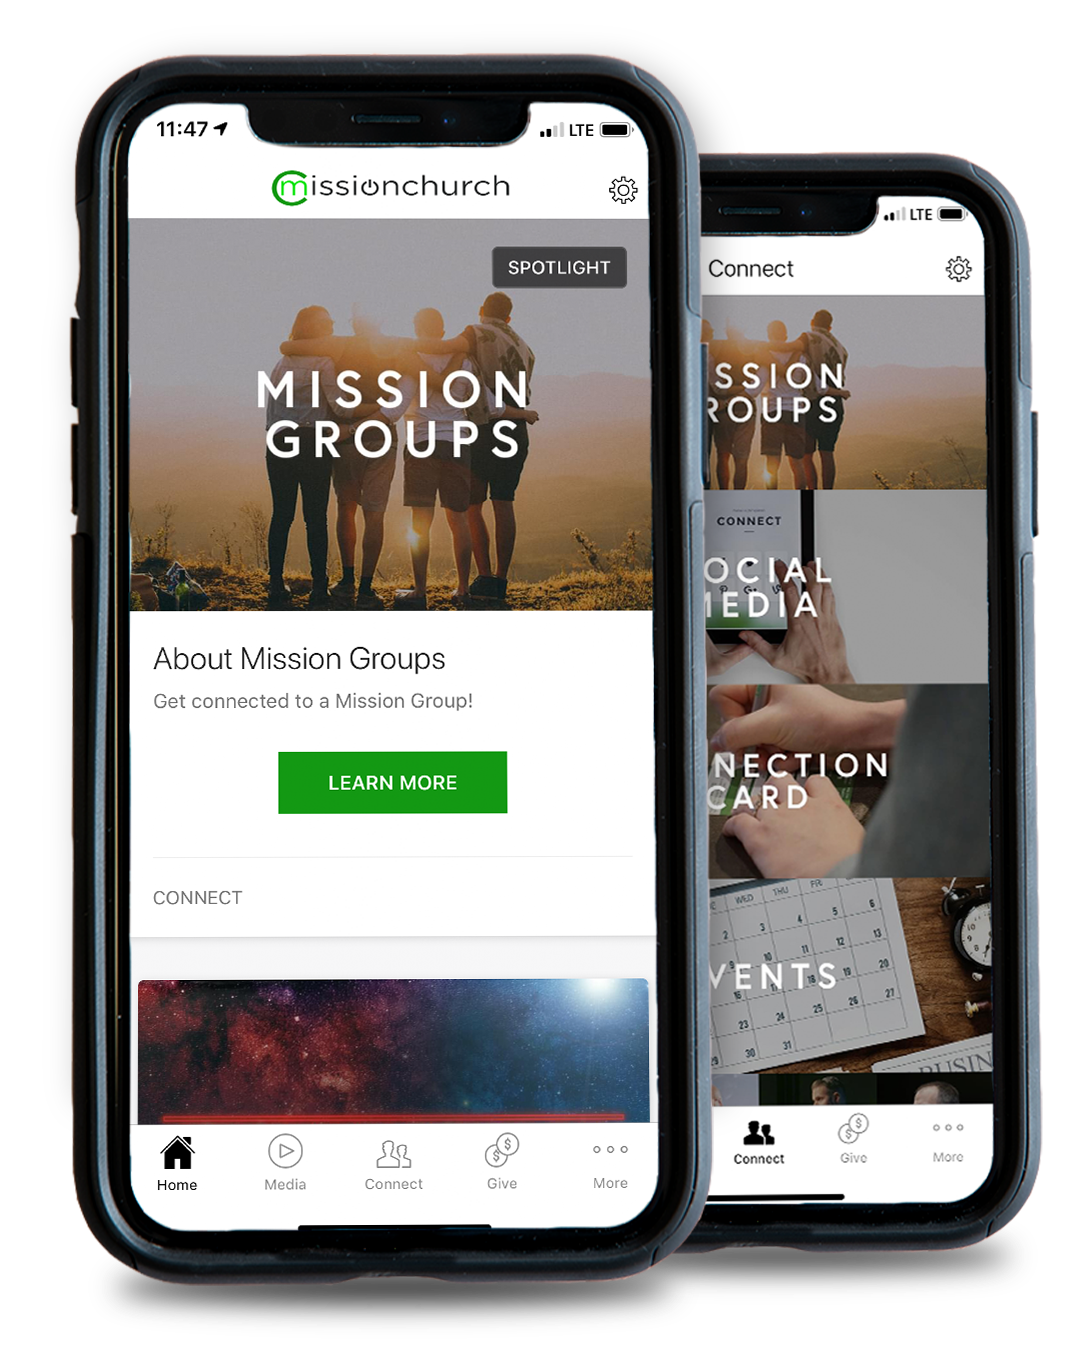 CONNECT WITH COMMUNITY fROM ANYWHERE! - Download our app to get connected like never before! View messages, watch videos, join a mission group, and give…all from one app!